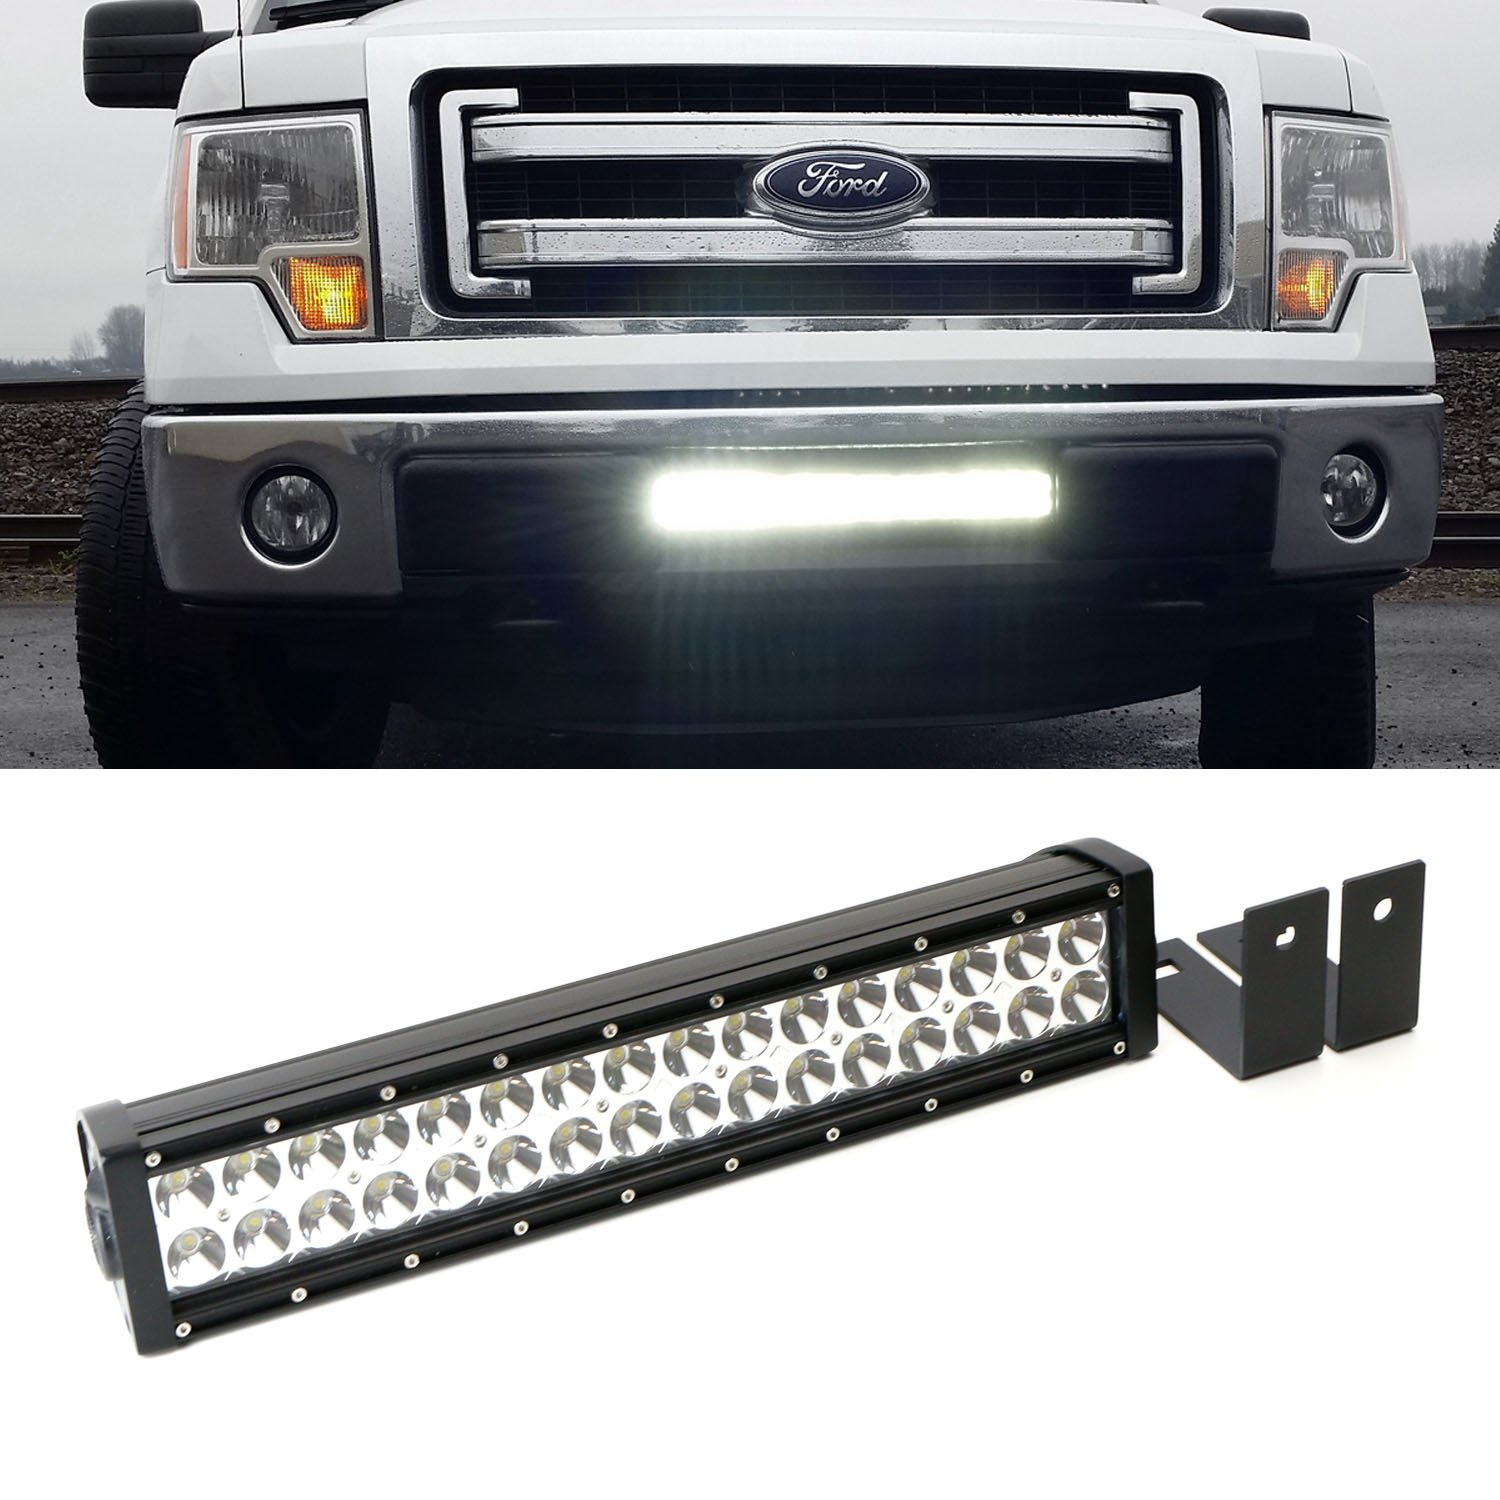 71O0aB9tT5L._SL1500_ amazon com ijdmtoy complete high power led light bar w lower rigid wiring harness for ford raptor at gsmx.co